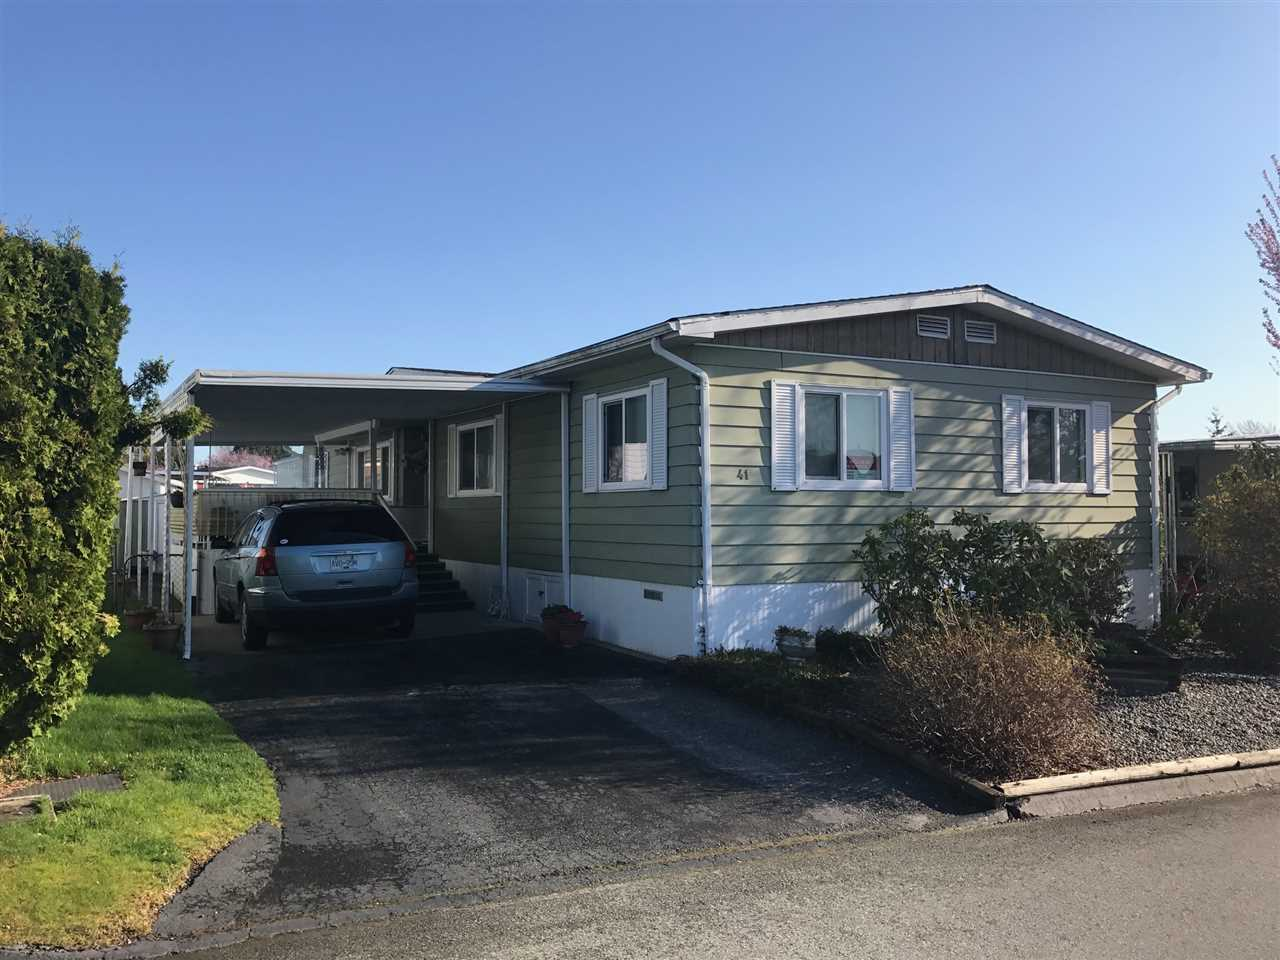 "Main Photo: 41 15875 20 Avenue in Surrey: King George Corridor Manufactured Home for sale in ""Searidge Bays"" (South Surrey White Rock)  : MLS®# R2154424"